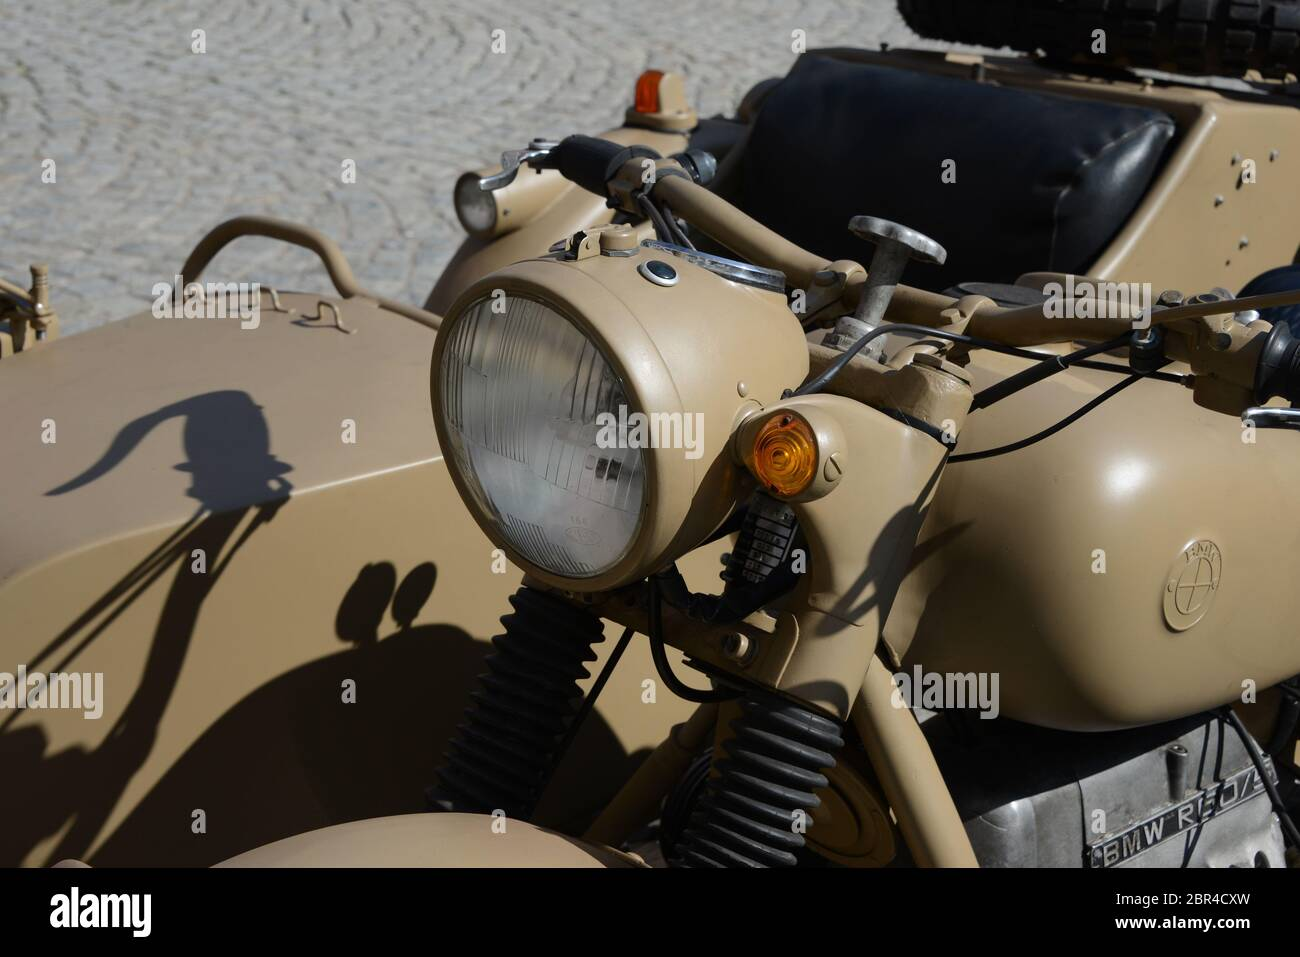 Page 3 Old Bmw Bike High Resolution Stock Photography And Images Alamy